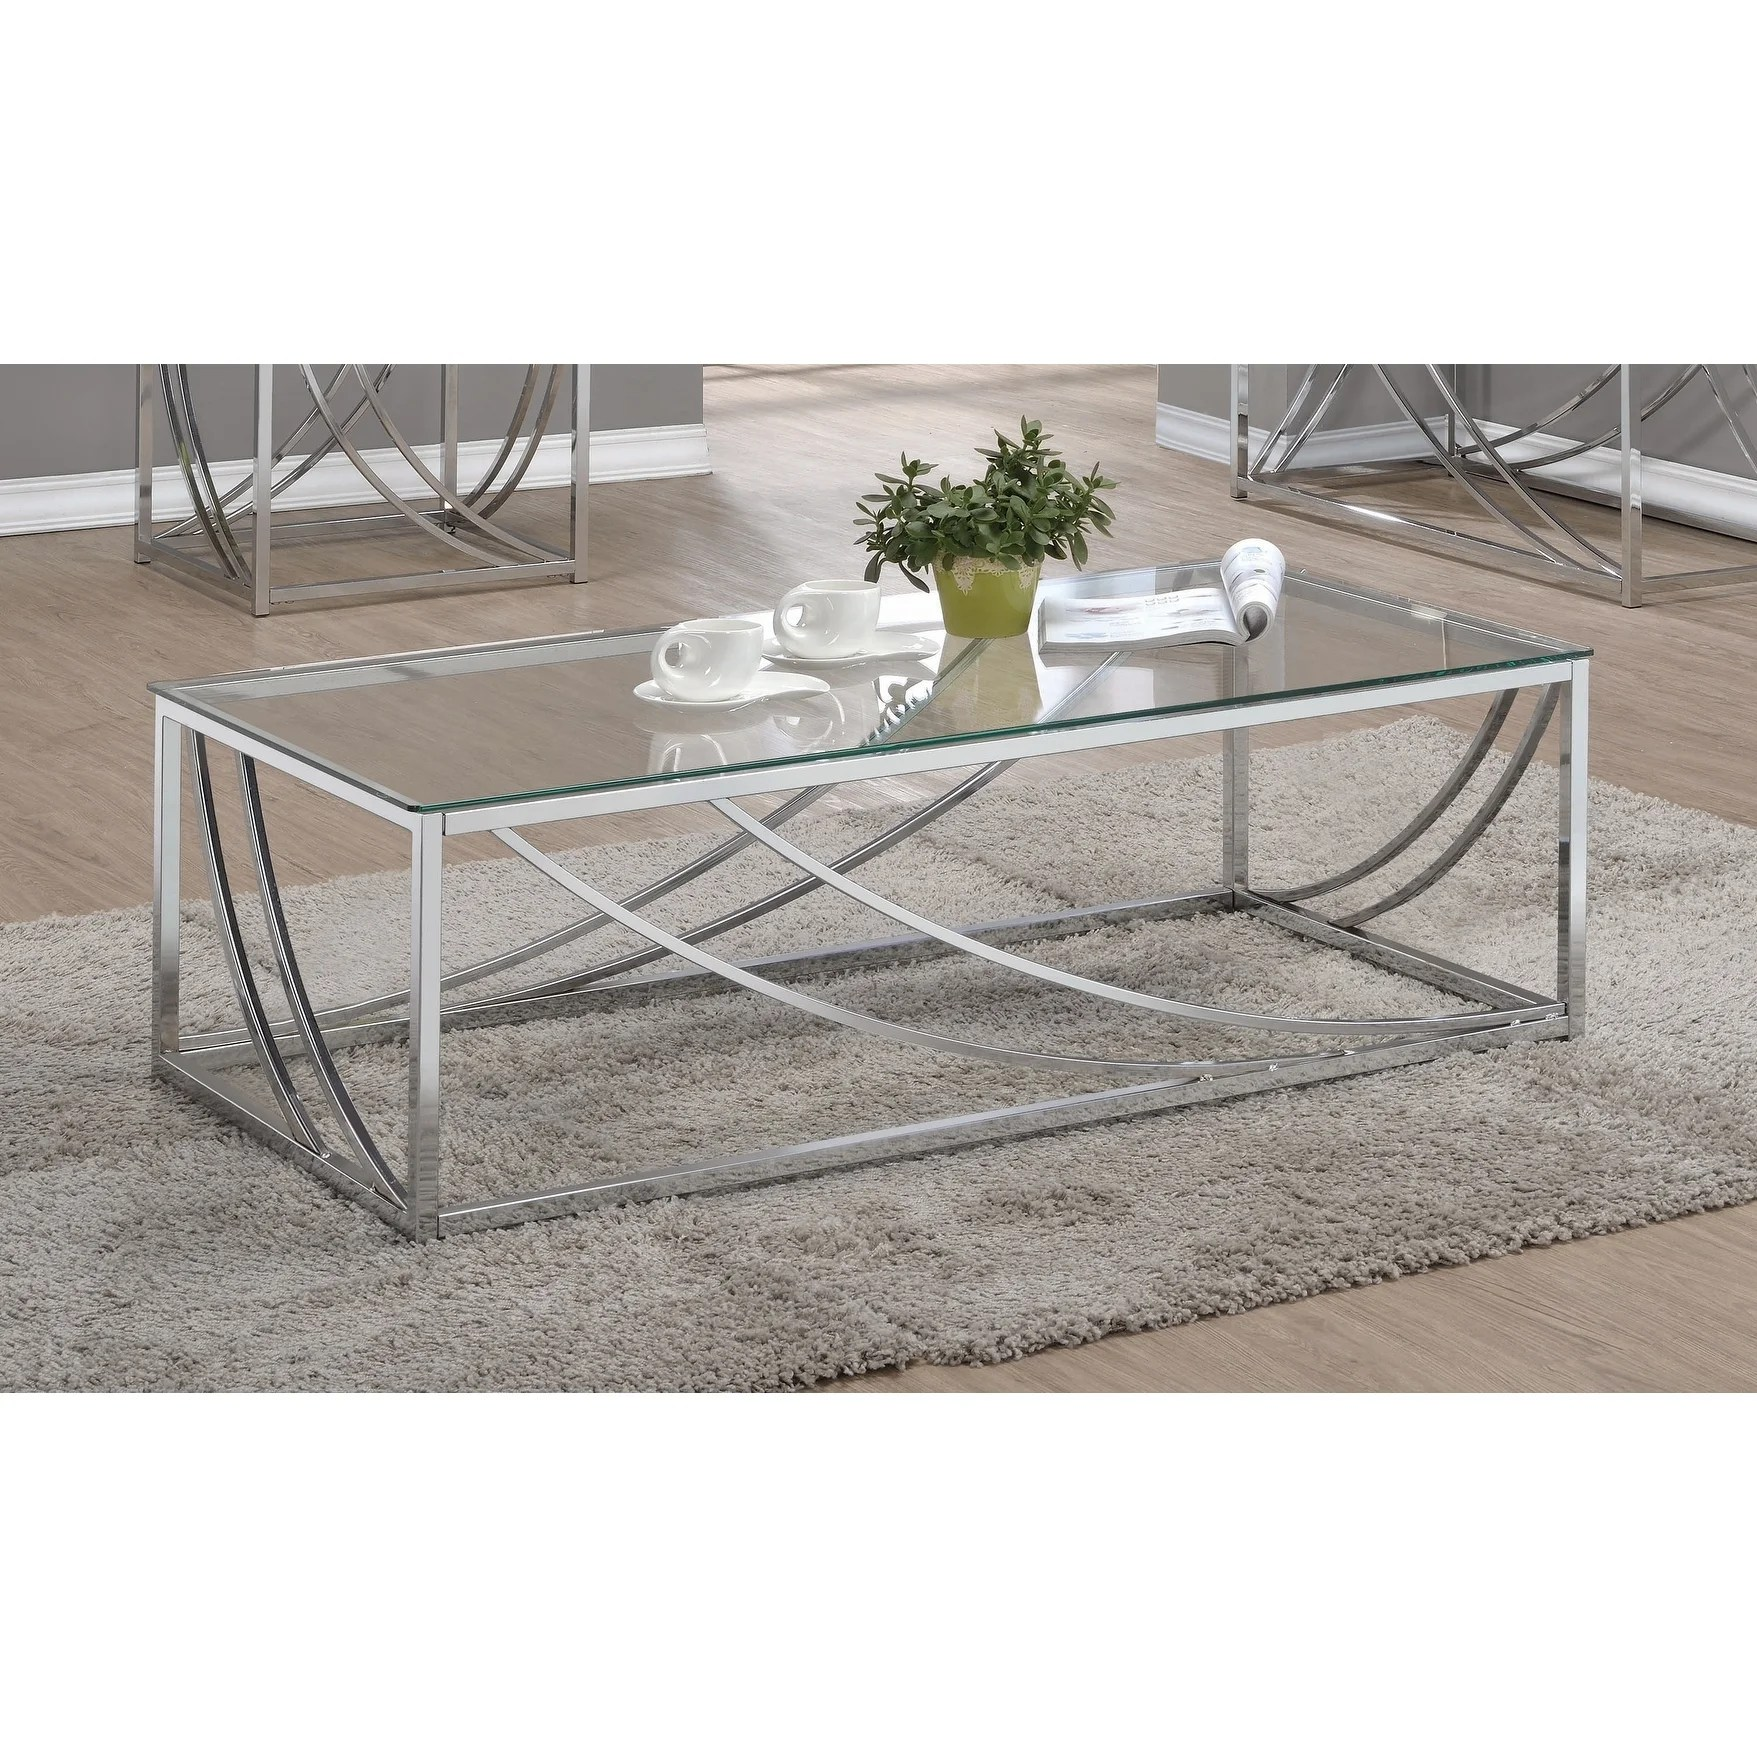 Shop Silver Orchid Brockwell Contemporary Chrome Coffee Table Overstock 24185521